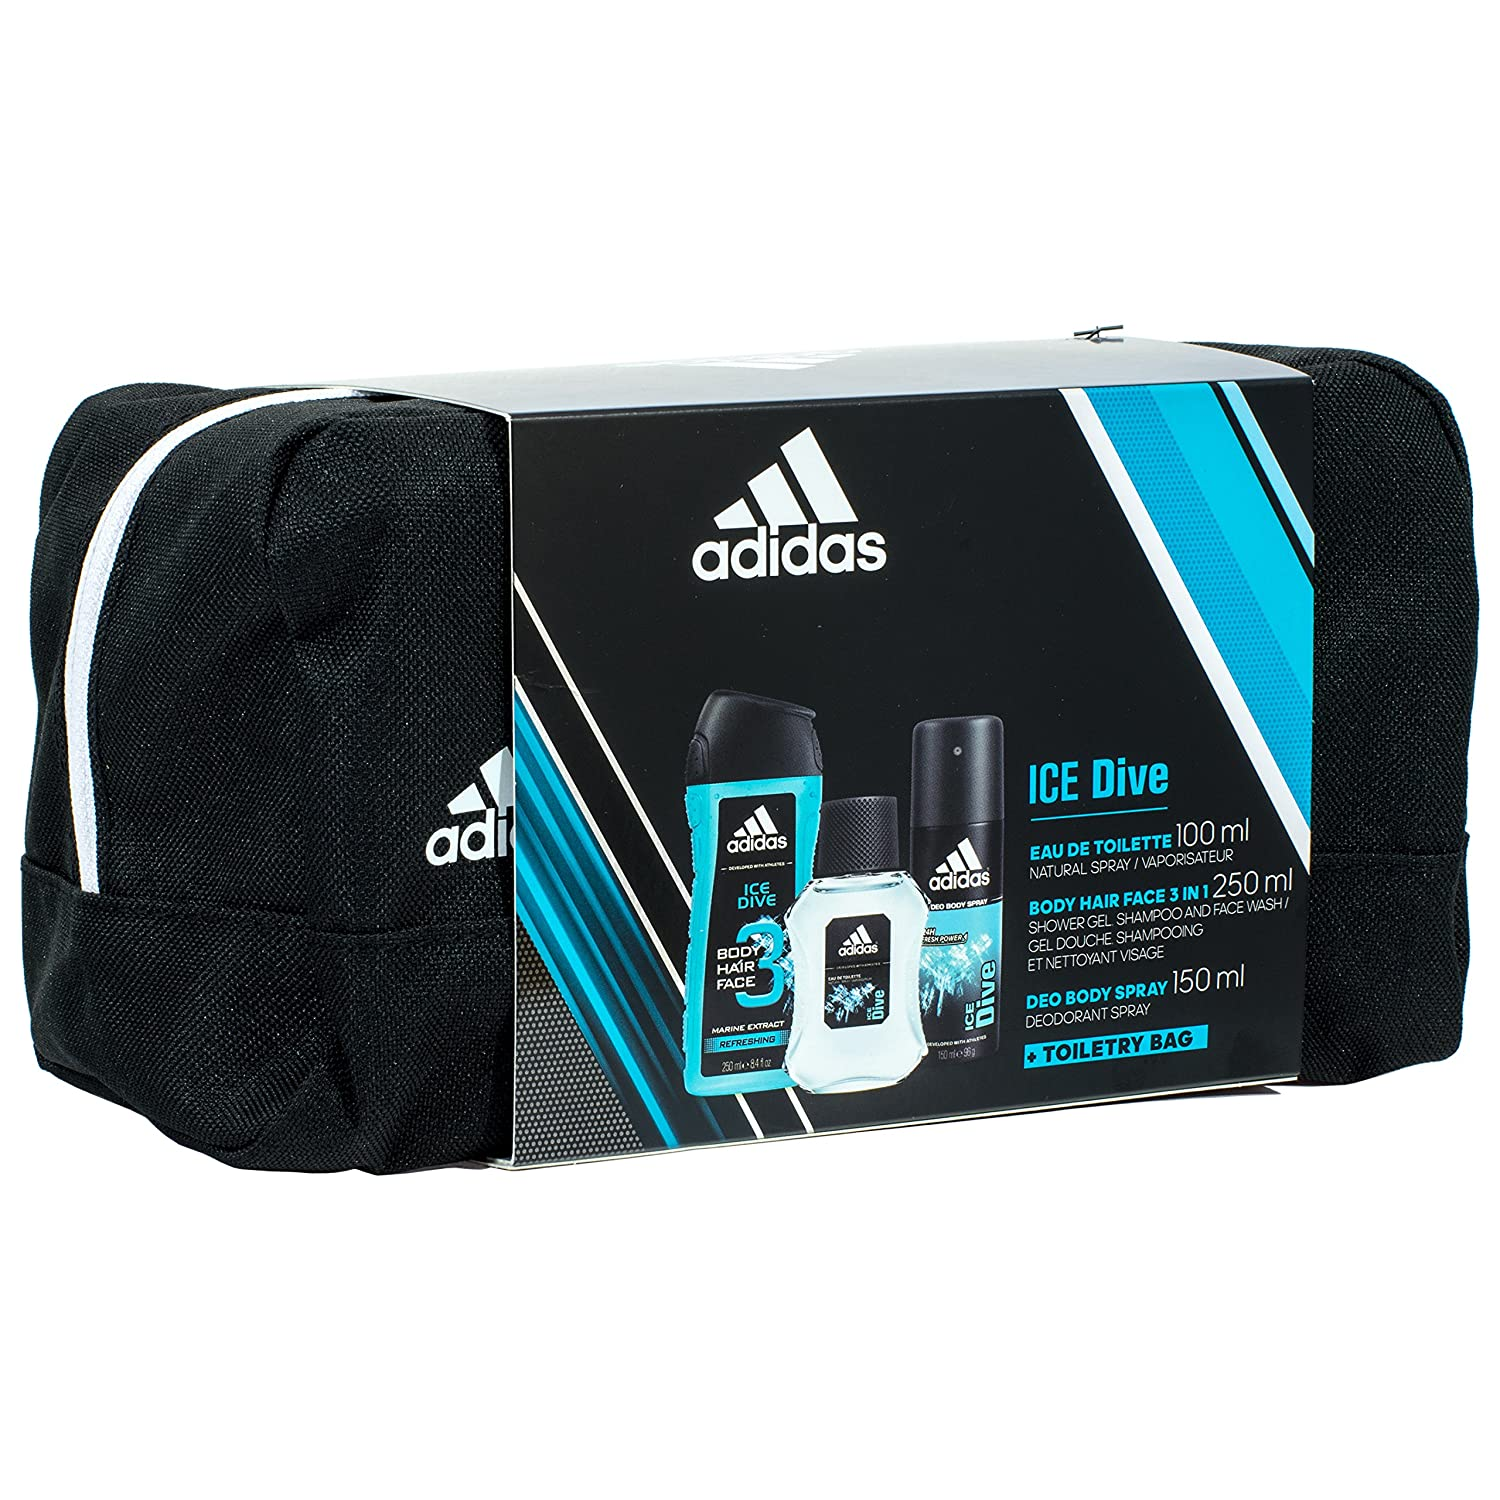 e0099926d8be Adidas Ice Dive Set for Men - 100ml Eau de Toilette 150ml Deodorant 250ml  Shower Gel and Toiletry Bag  Amazon.co.uk  Beauty